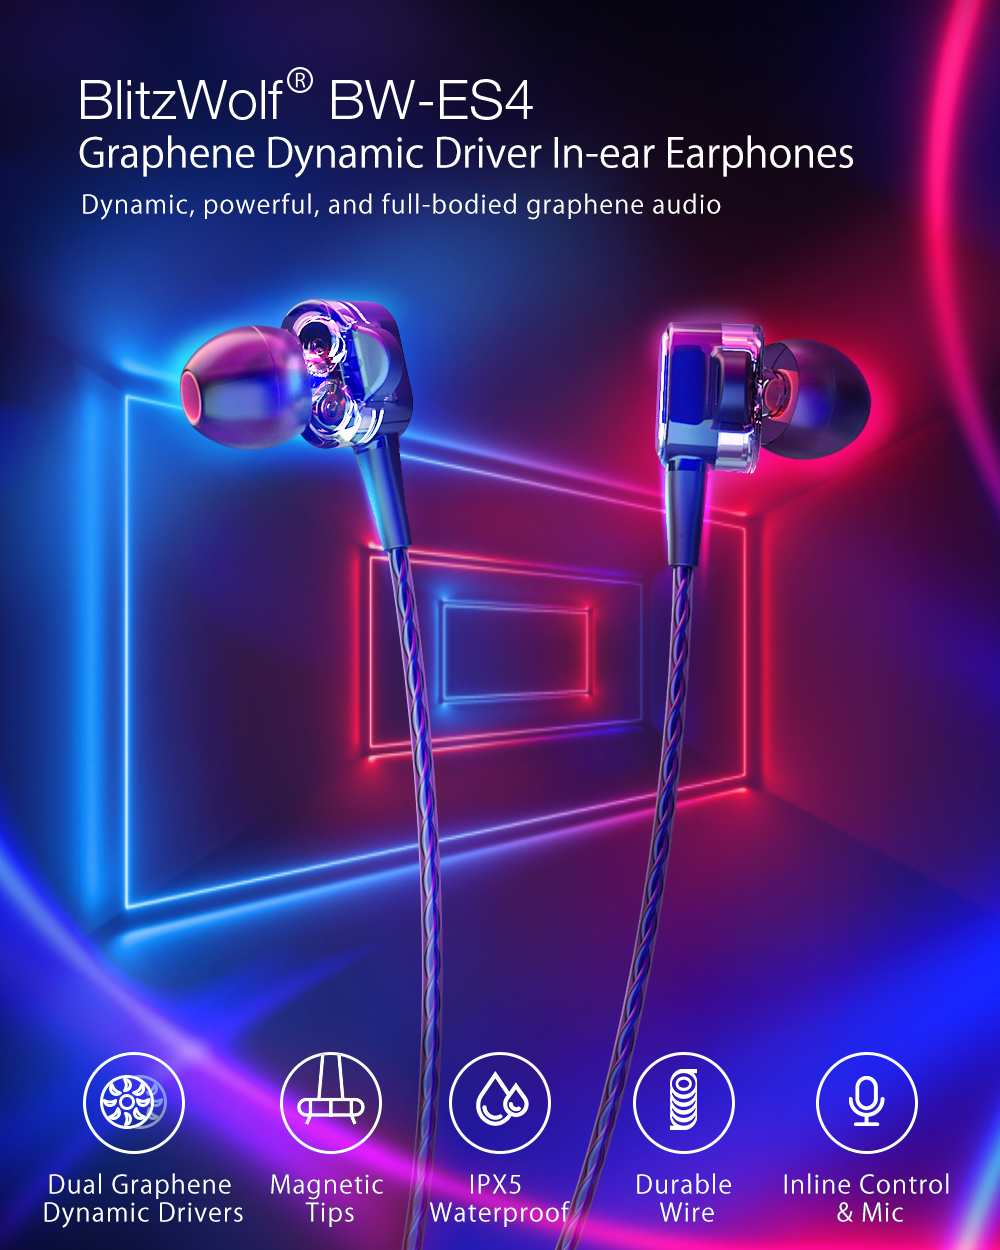 Blitzwolf bw-es4 dual dynamic driver earphones ipx5 in-ear earphones 3.5mm wired control earbuds magnetic headphones with mic (black)